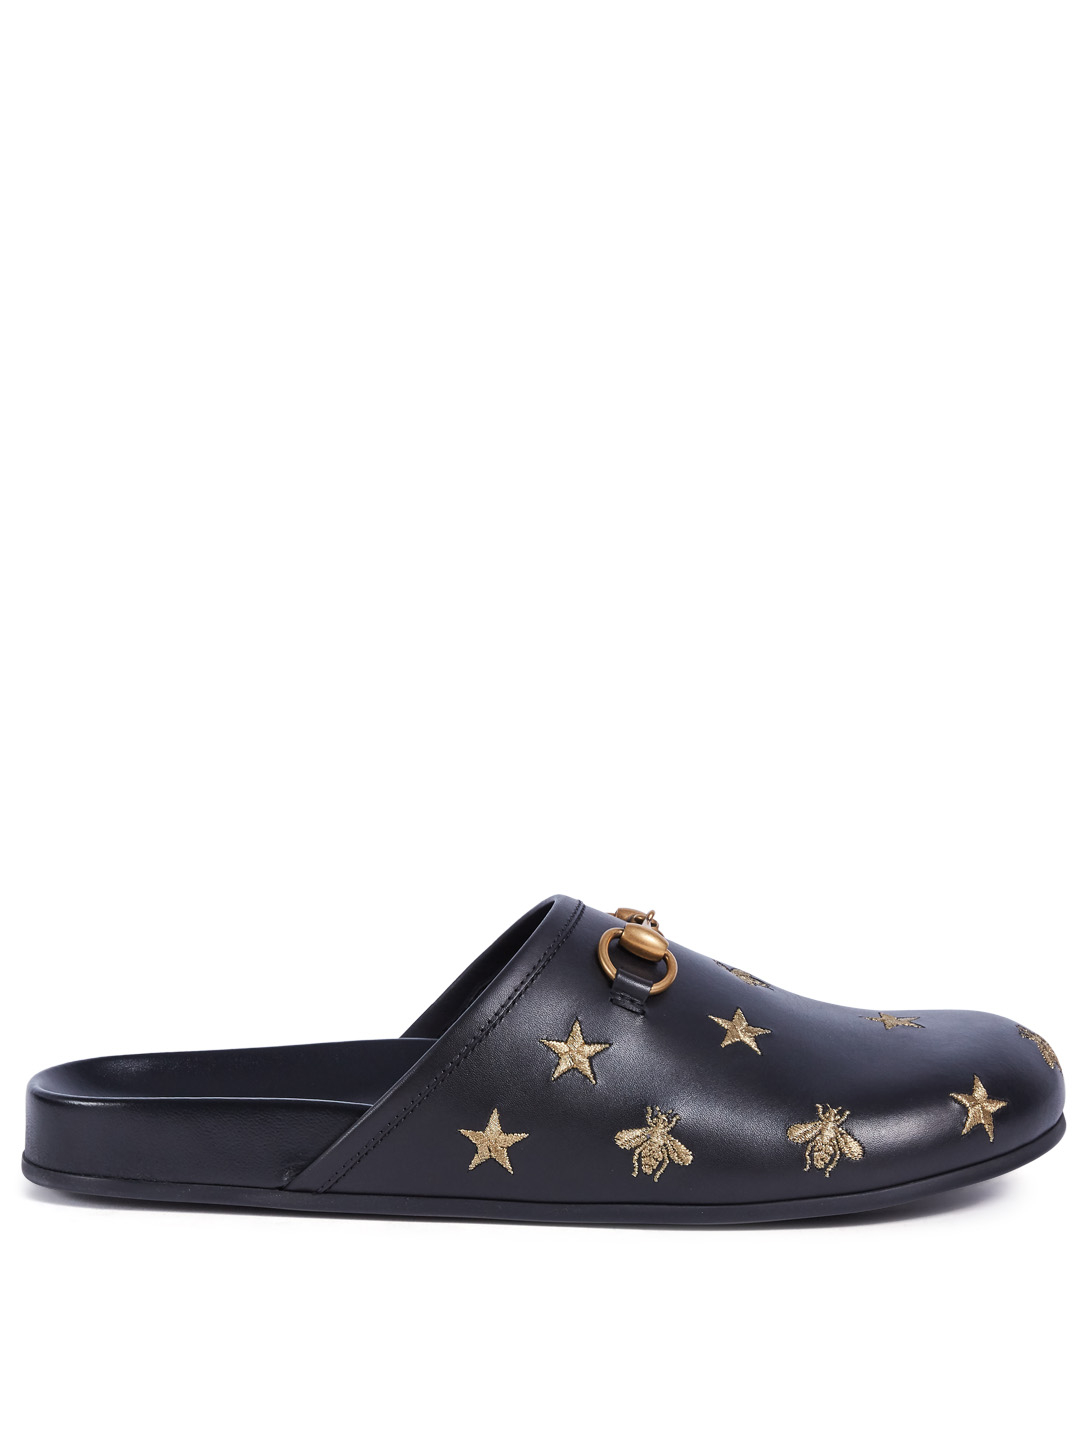 16e56b731d18 GUCCI River Embroidered Leather Clog Slippers Men s Black ...